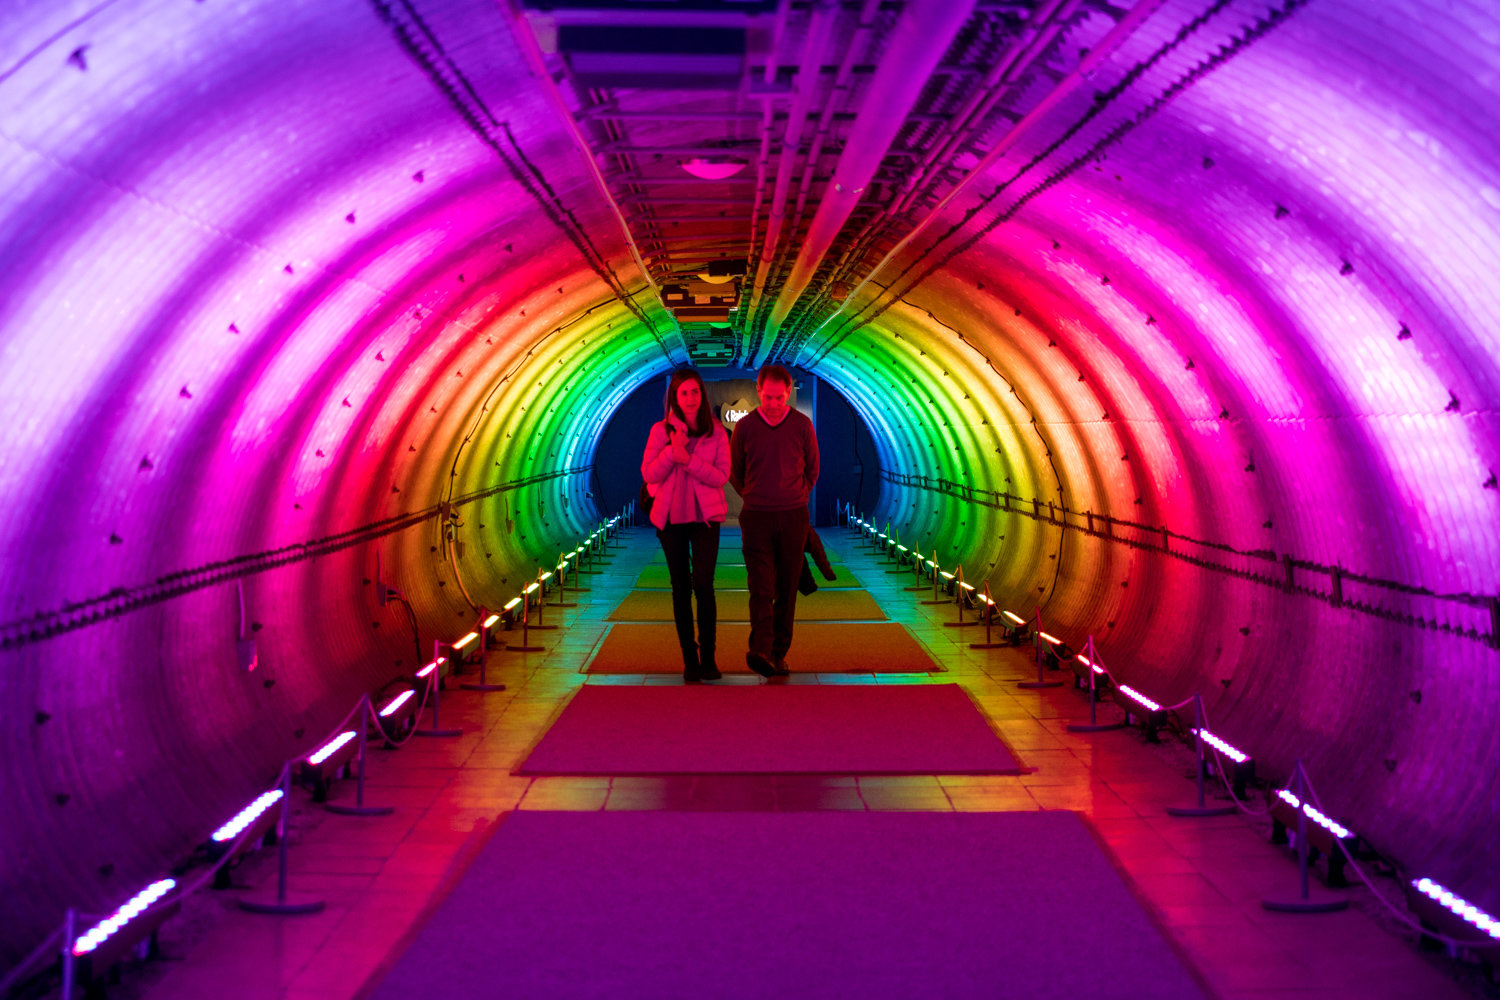 Visitors walk through the rainbow tunnel between rooms in the Enid A. Haupt Conservatory for 'The Orchid Show,' on display at the New York Botanical Garden through April 19.